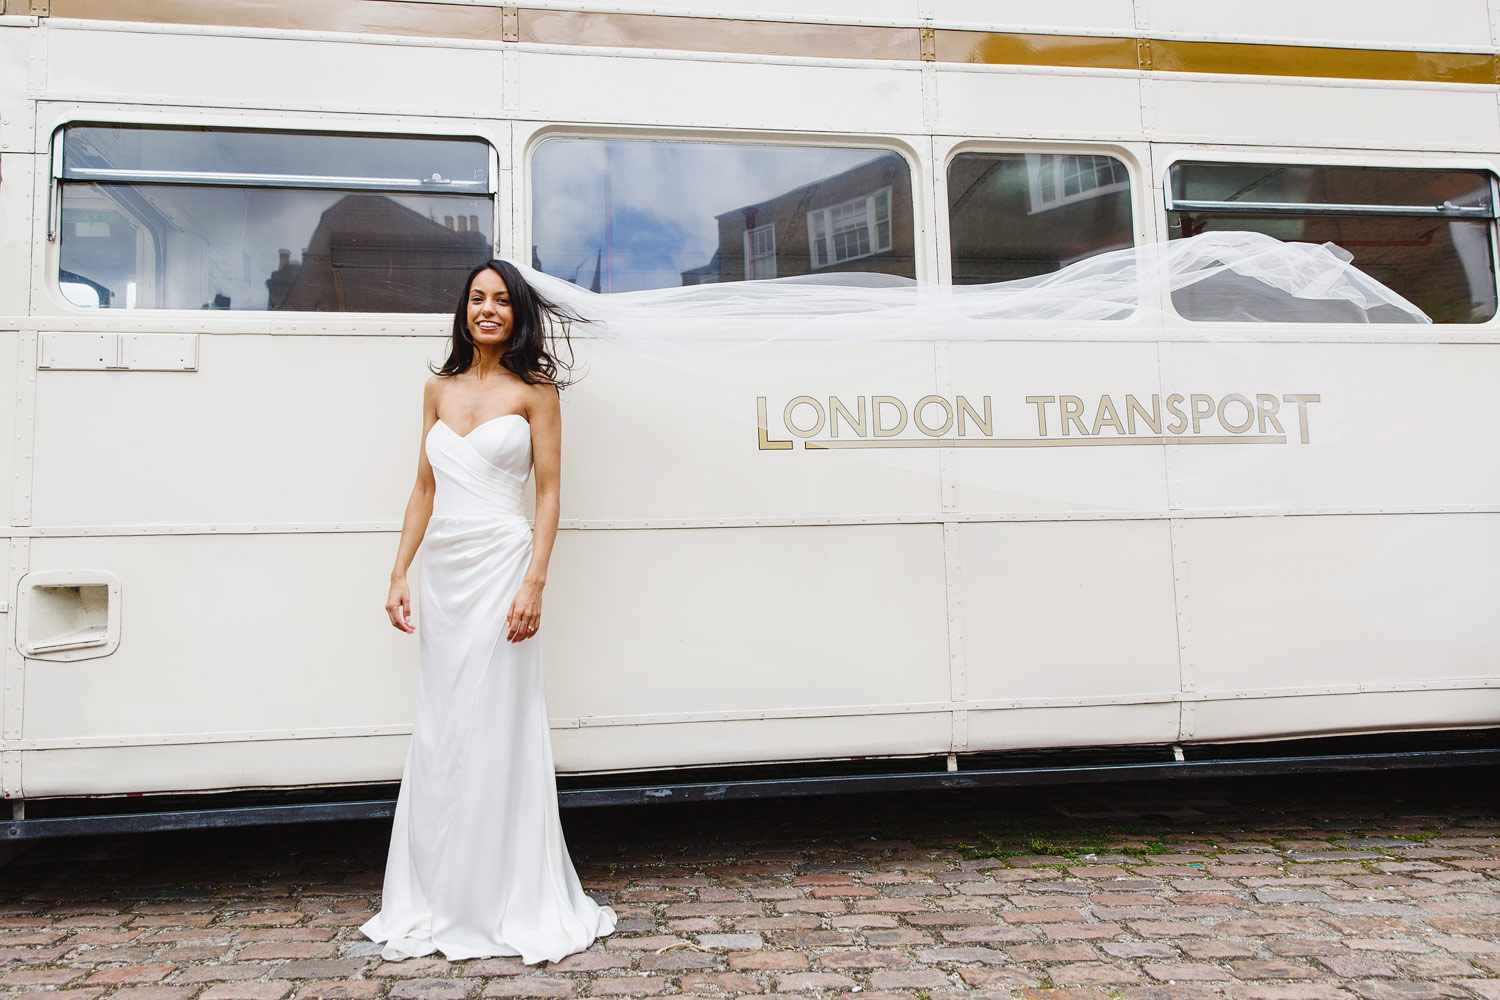 A bride stands in front of a white wedding bus at Burgh House Museum in Hampstead, London - wedding photographer